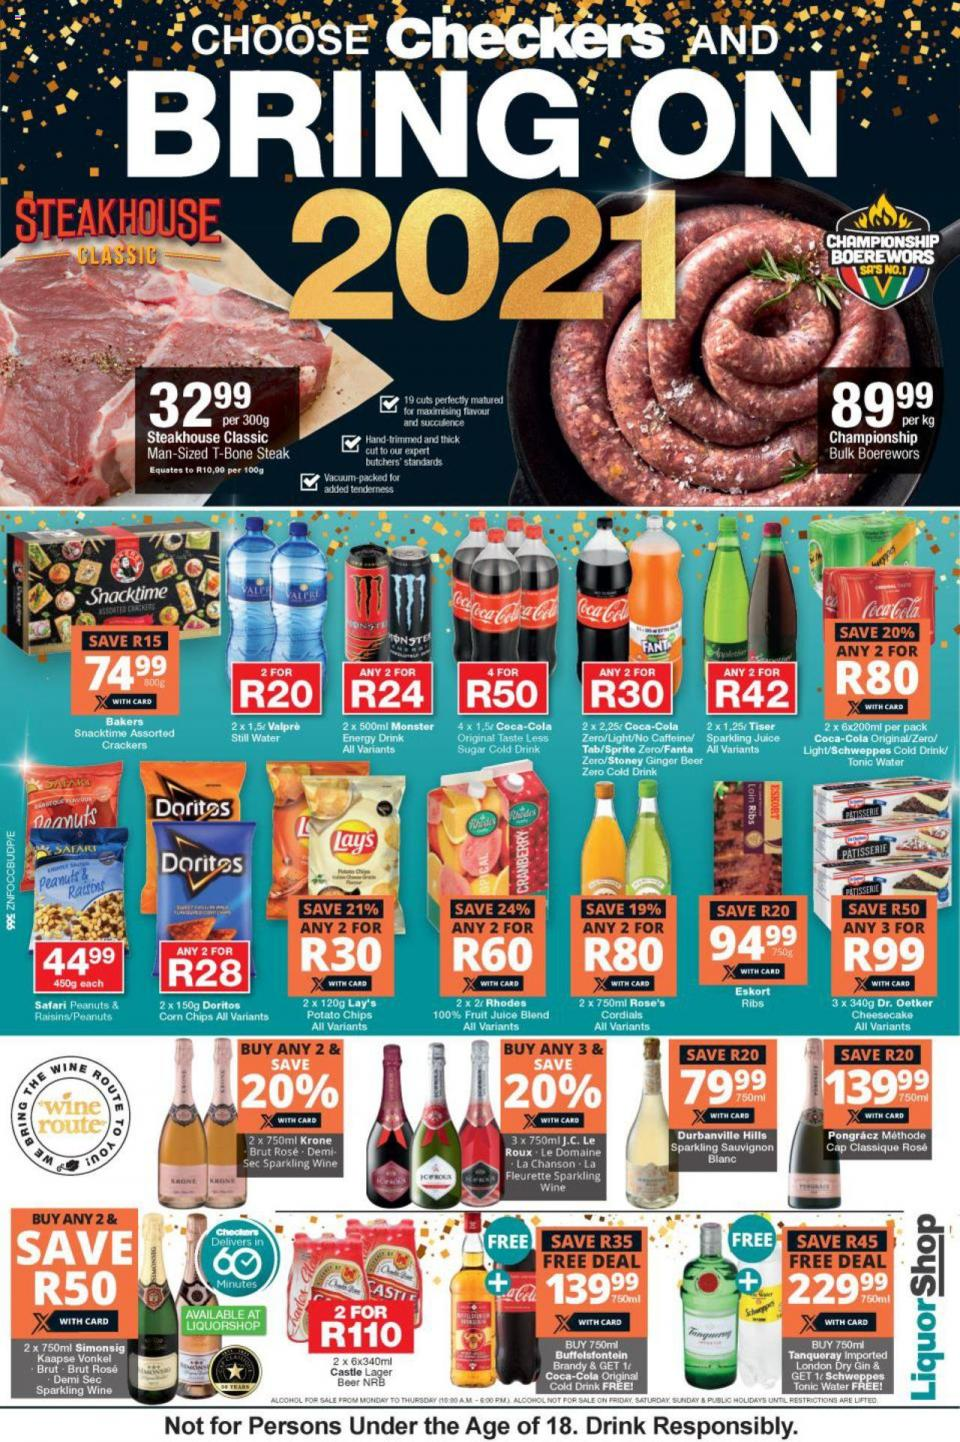 checkers specials new years deals 28 december 2020